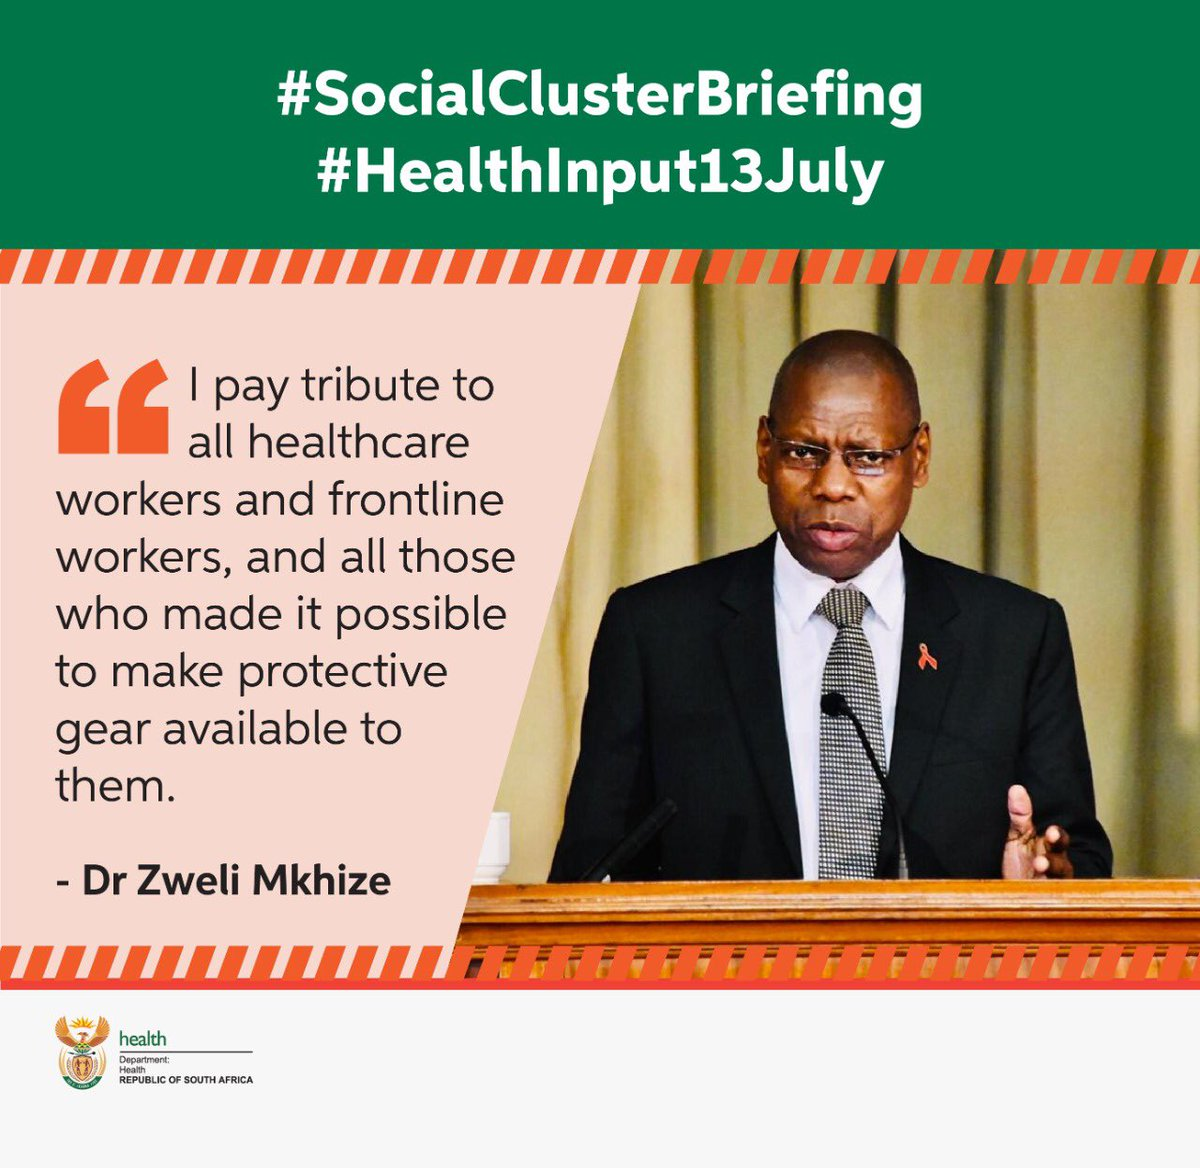 I pay tribute to all healthcare workers and frontline workers, and all those who made it possible to make protective gear available to them. #SocialClusterBriefing #HealthInput13July #NewNormal